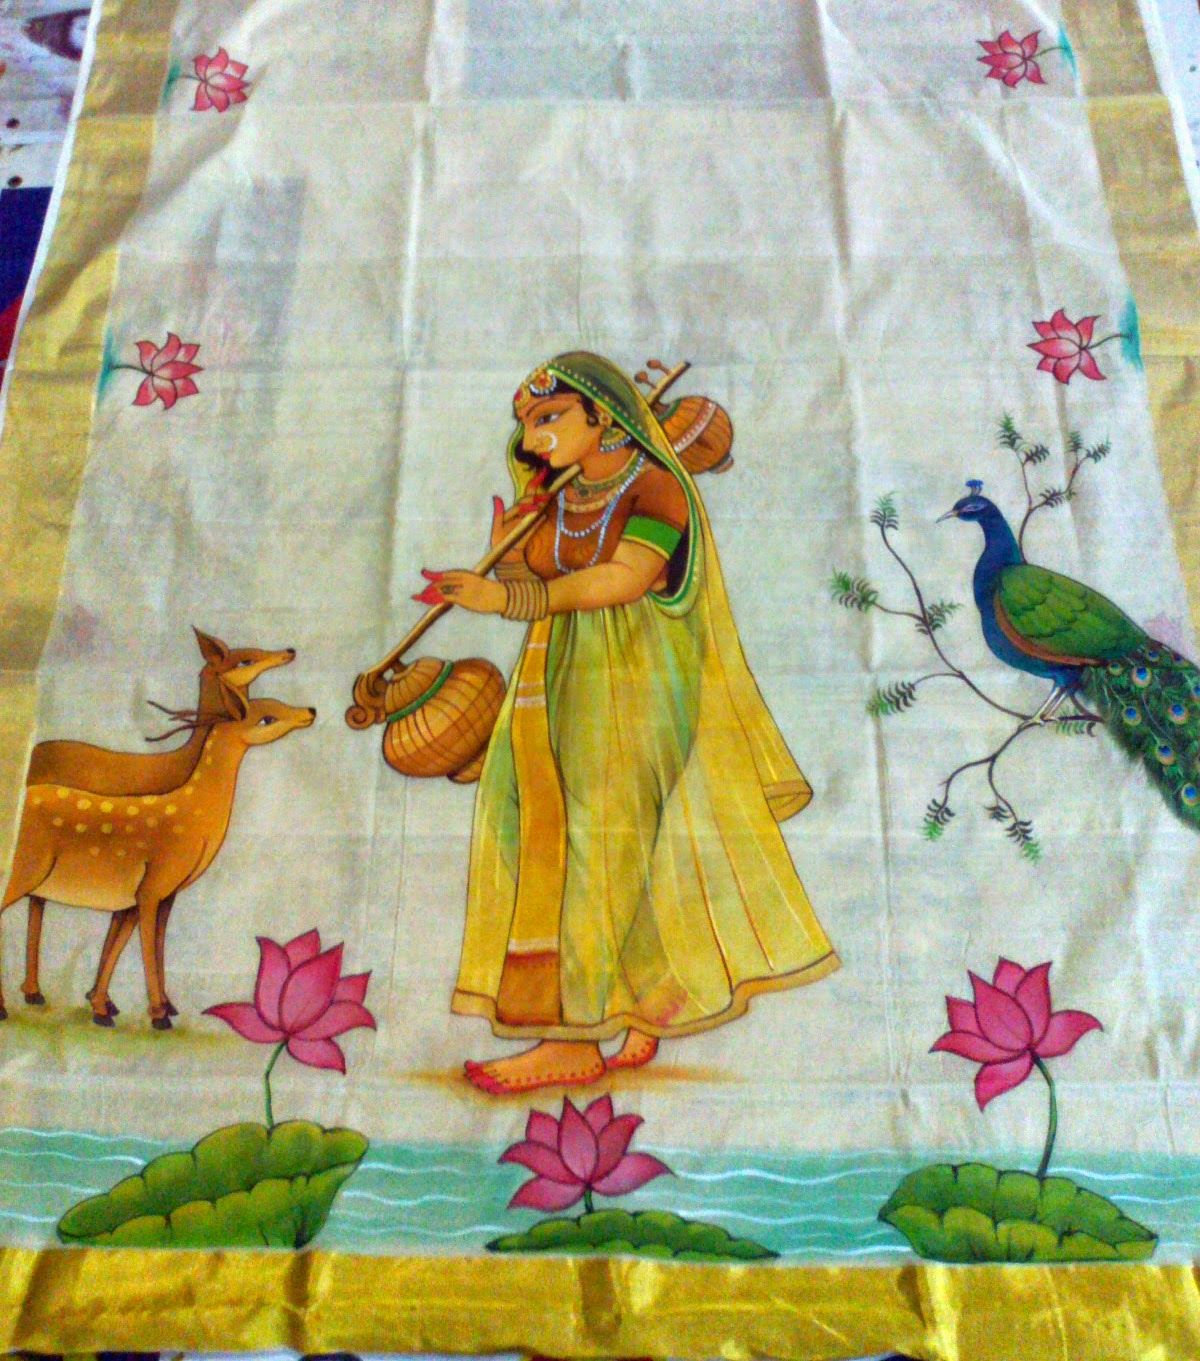 Varnachithra sarees new designs kerala mural for Aithihya mural painting fabrics